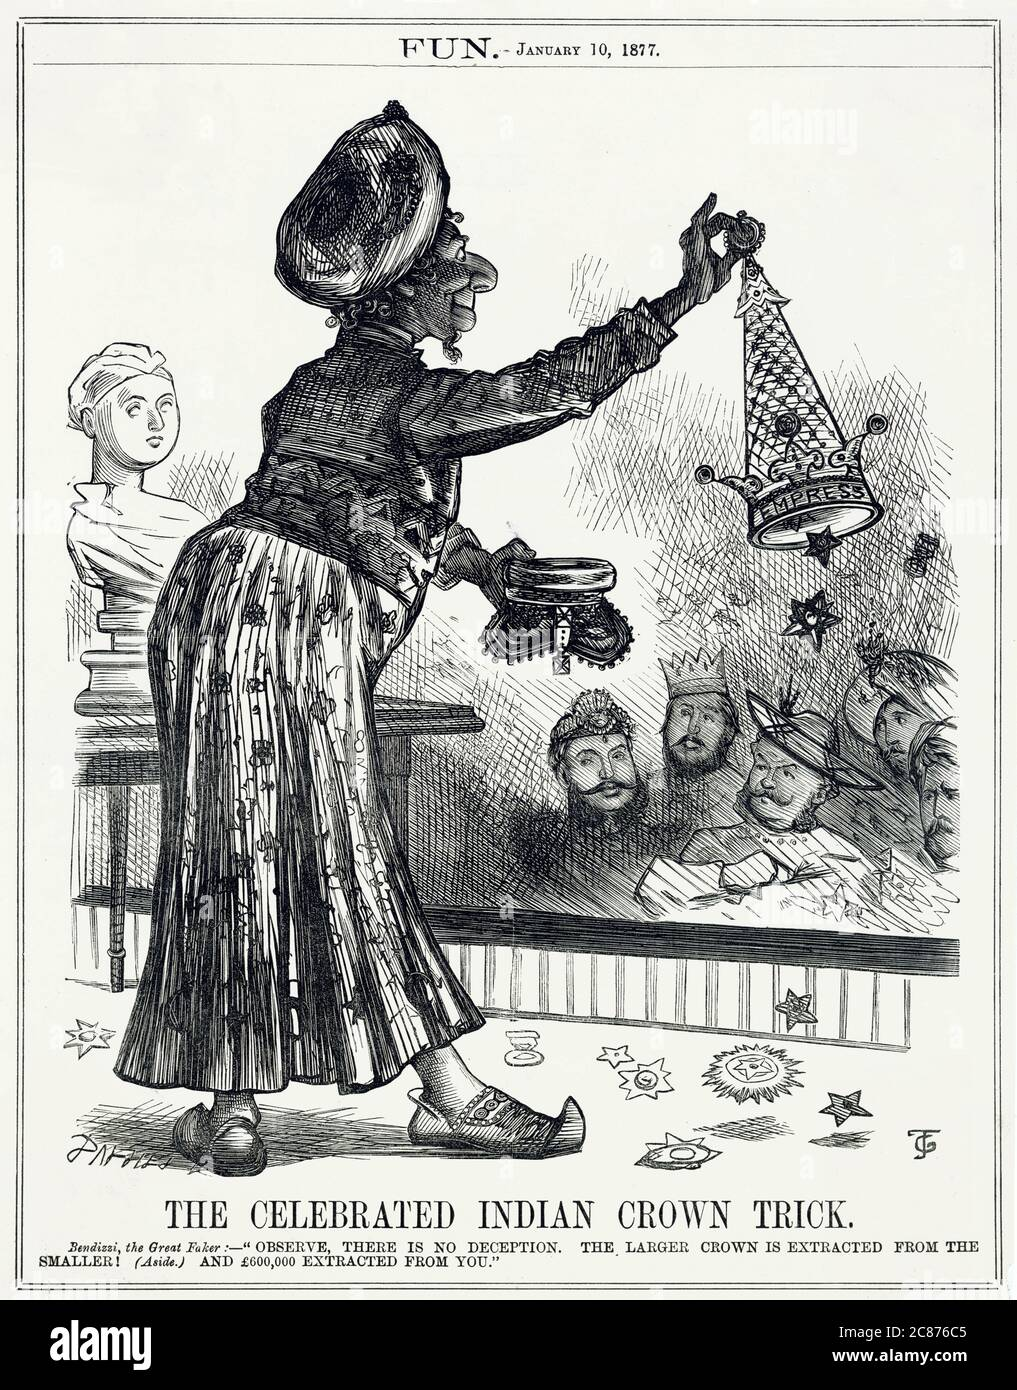 Cartoon, The Celebrated Indian Crown Trick -- a satirical depiction of Benjamin Disraeli, Conservative Prime Minister, as Bendizzi the Great Faker, performing as a magician to various heads of state. He has miraculously extracted a larger crown, marked Empress, from the smaller British crown -- a reference to his awarding of the title of Empress of India to Queen Victoria (seen on the left as a portrait bust).      Date: 1877 Stock Photo